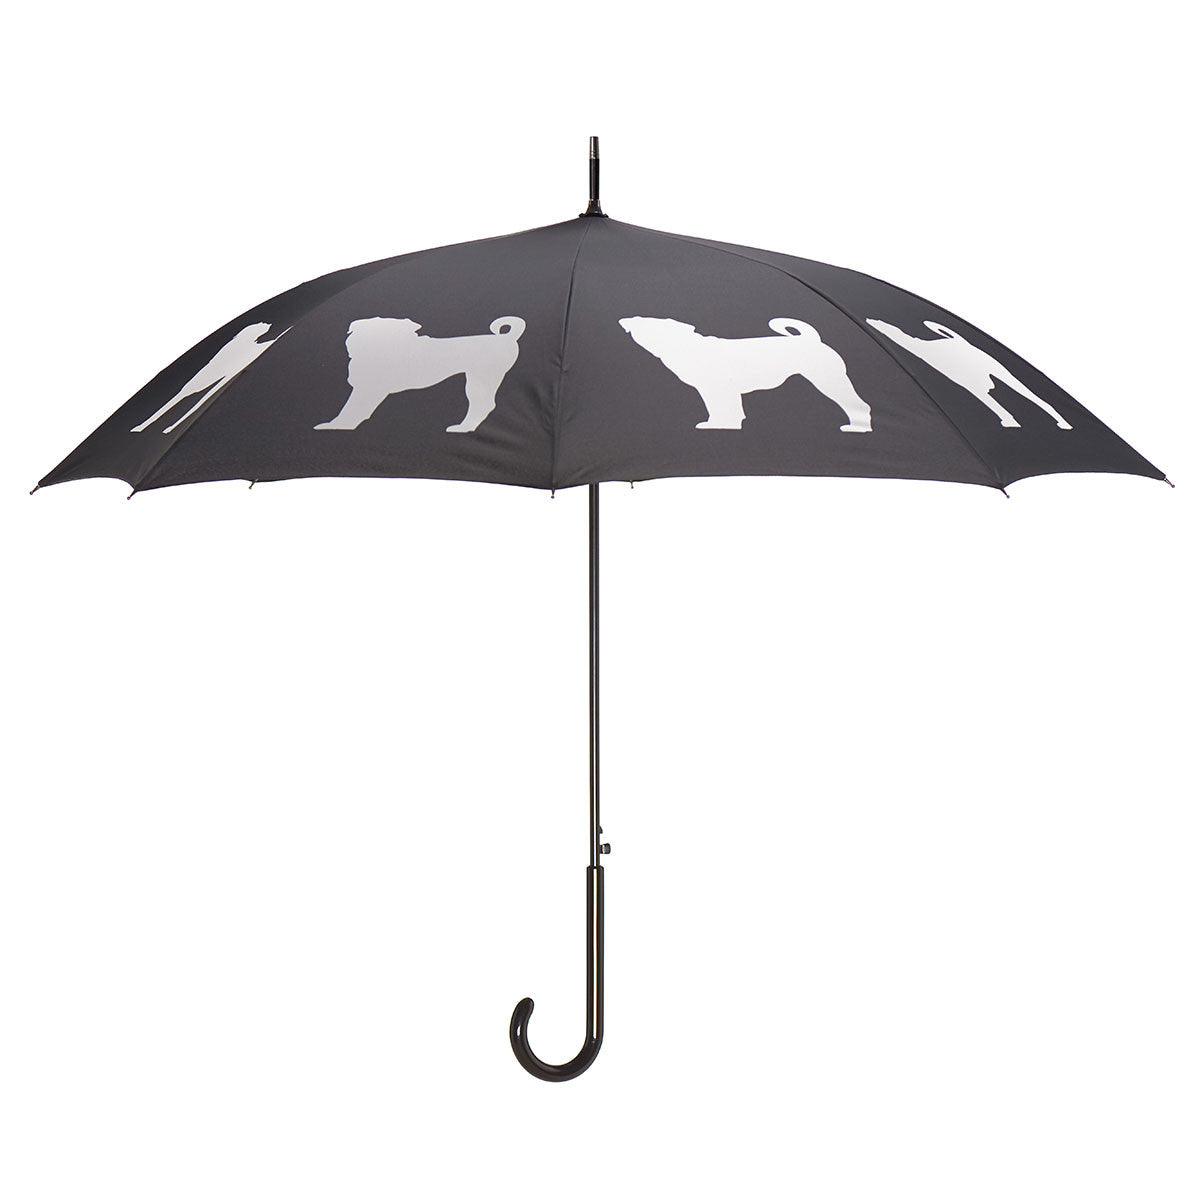 Pug Stick Umbrella Auto Open Premium Quality White on Black